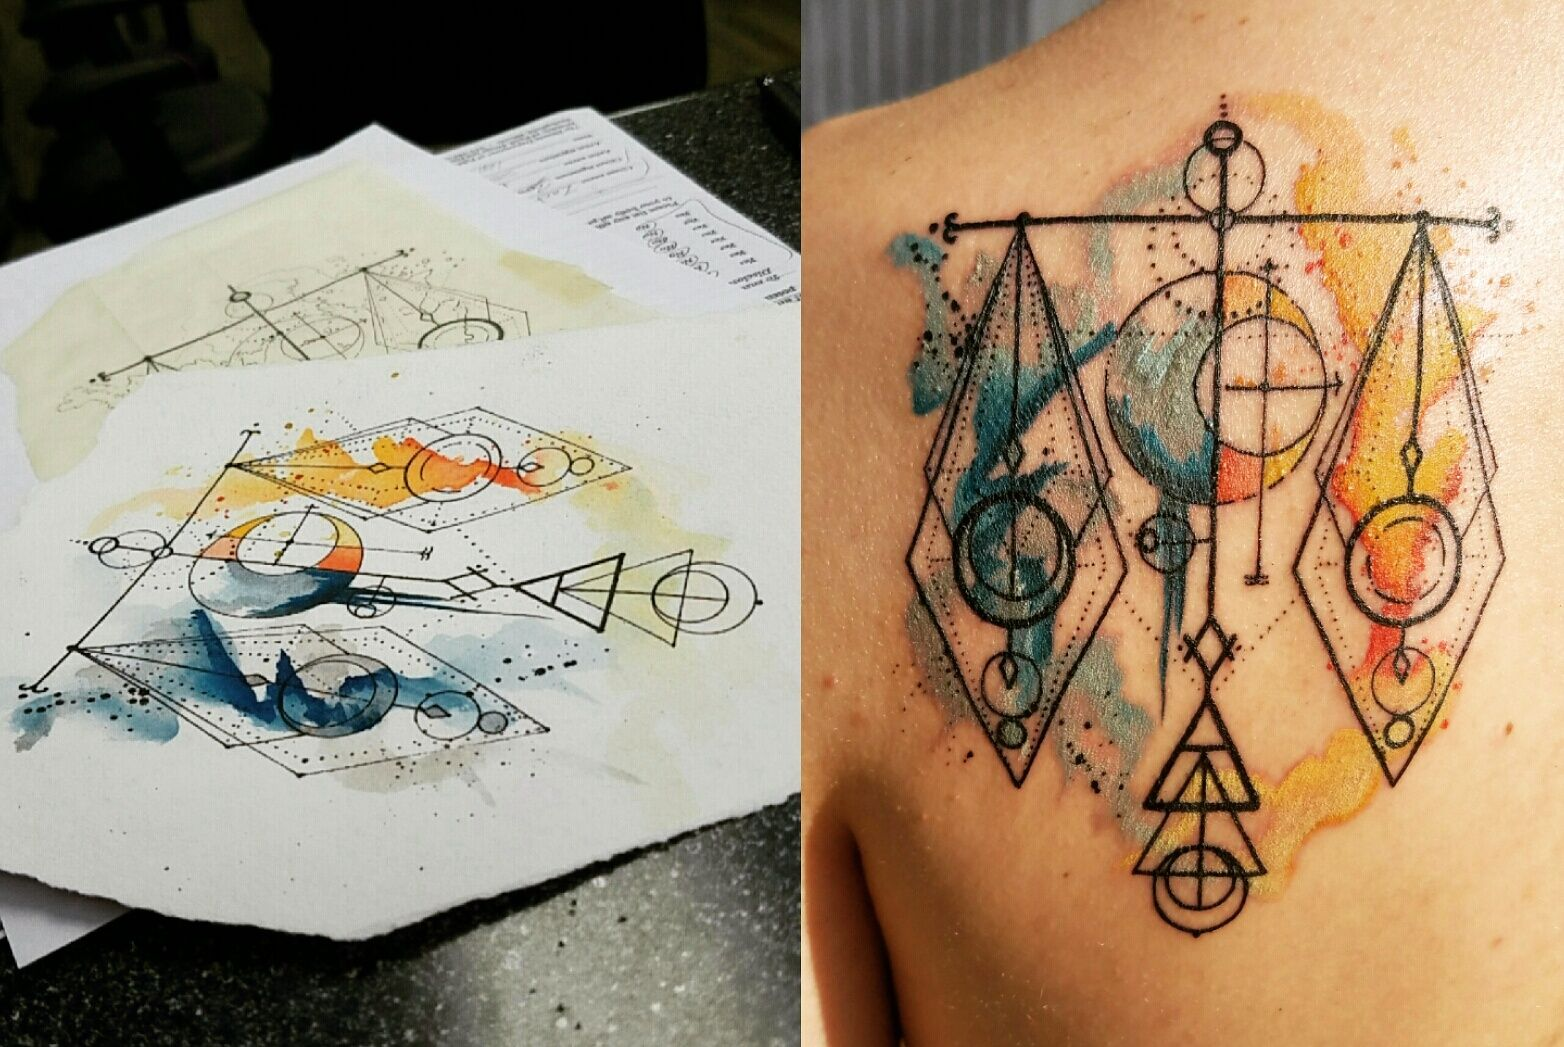 Tattoo Libra Libra Scales Geometric Watercolor Tattoo Art Pinterest